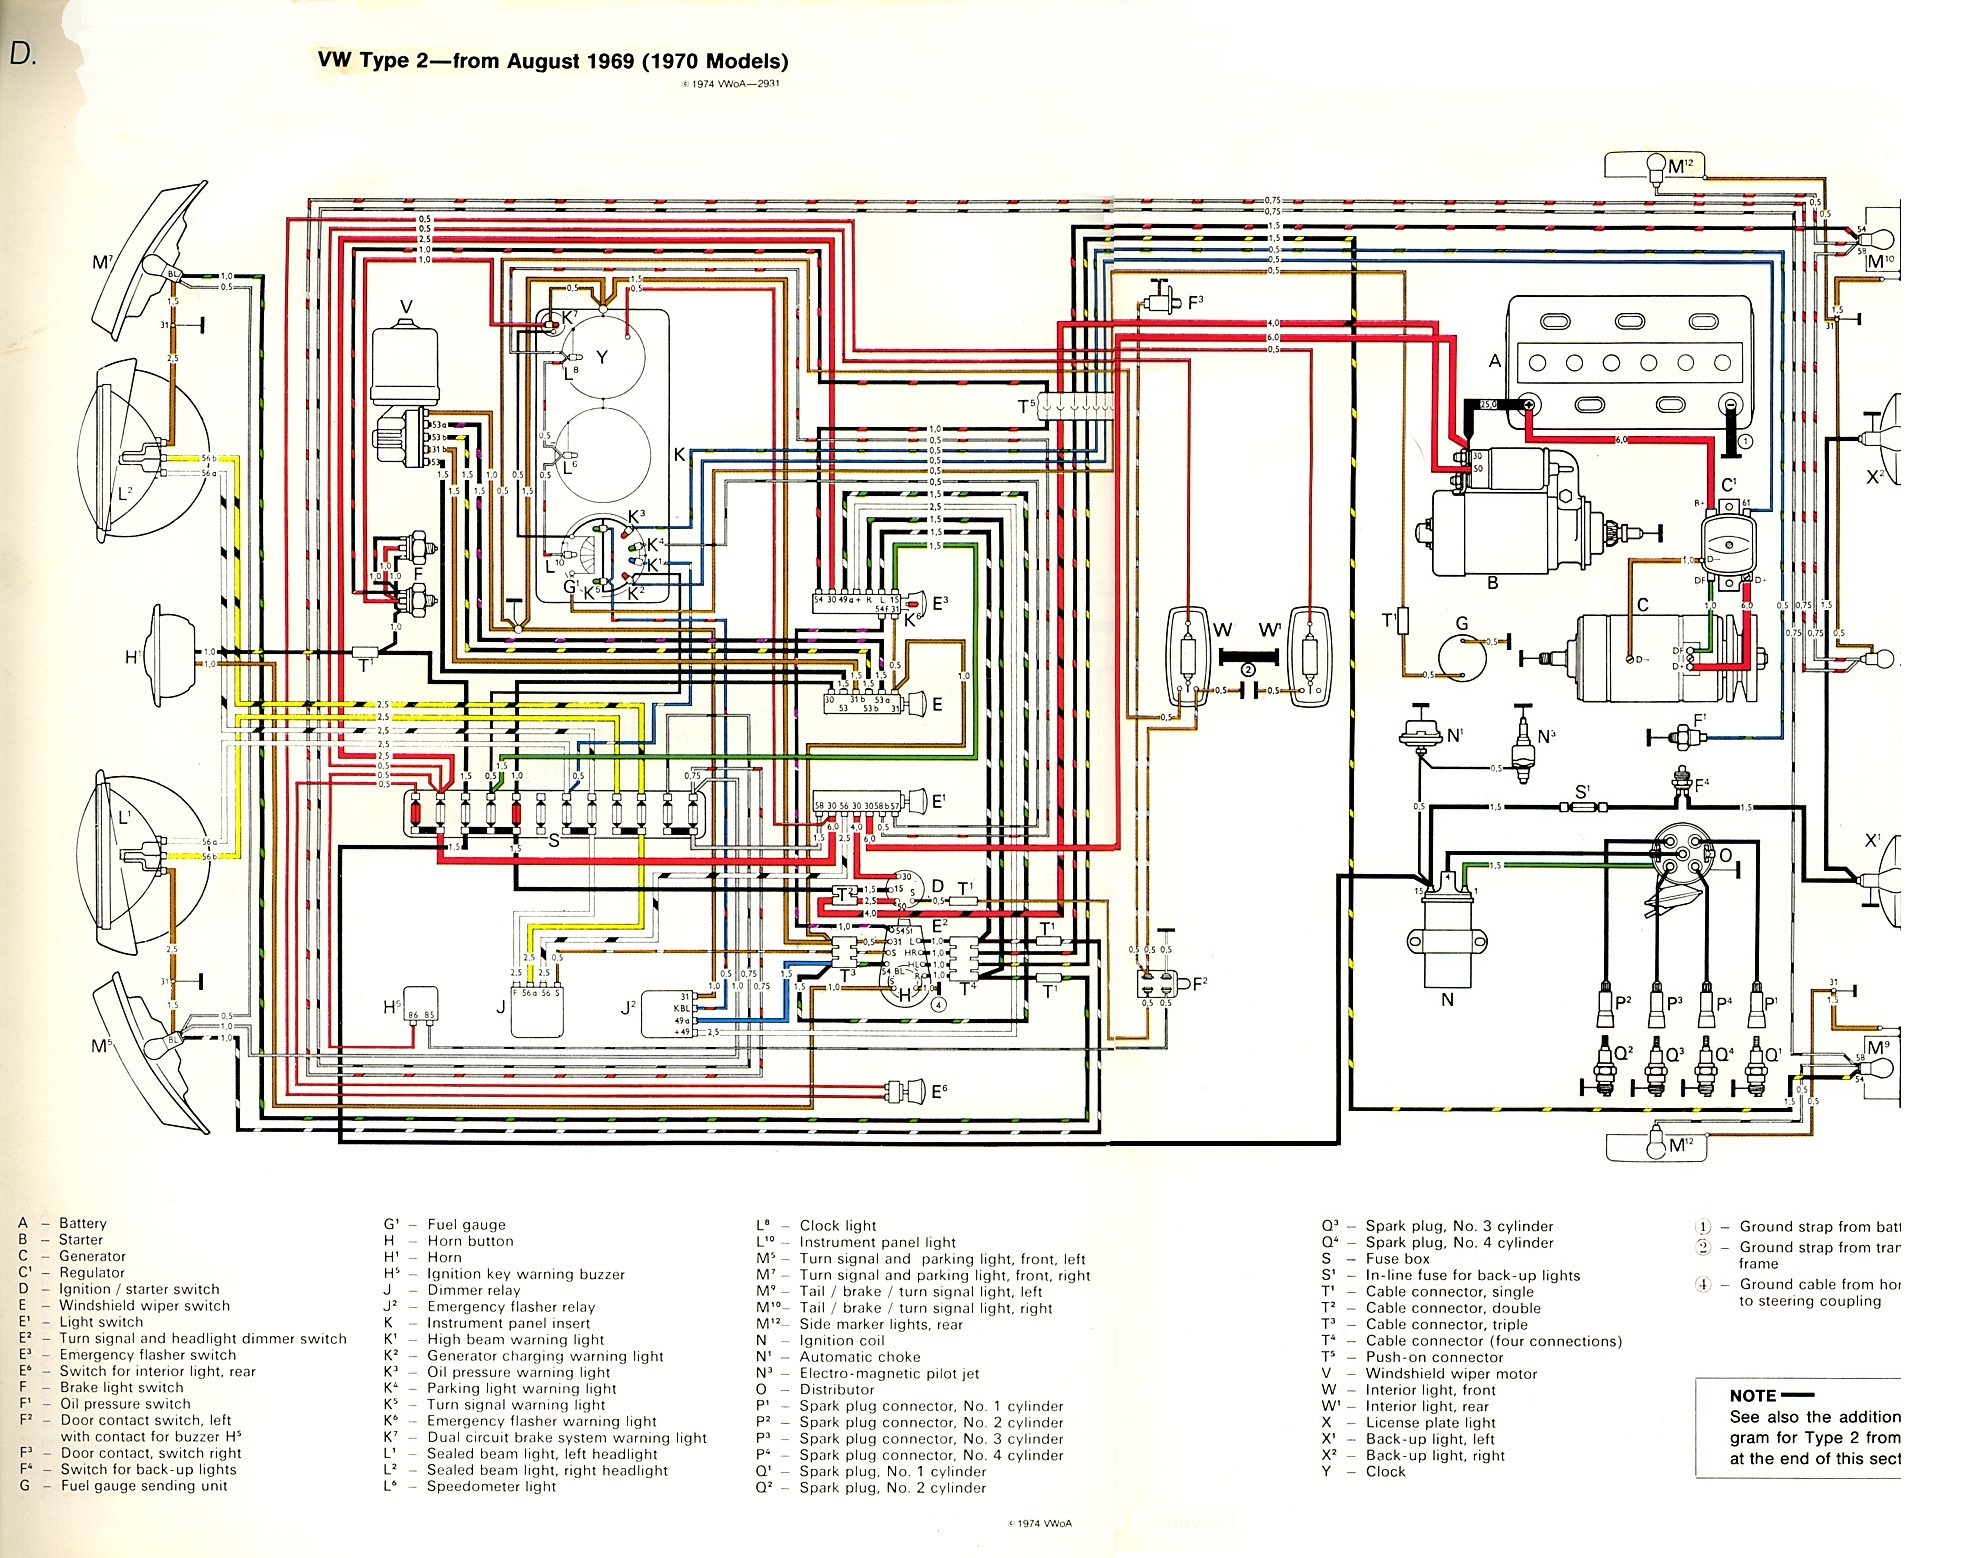 hight resolution of 1964 vw wiring diagram ignition 11 6 tridonicsignage de u2022thesamba com type 2 wiring diagrams